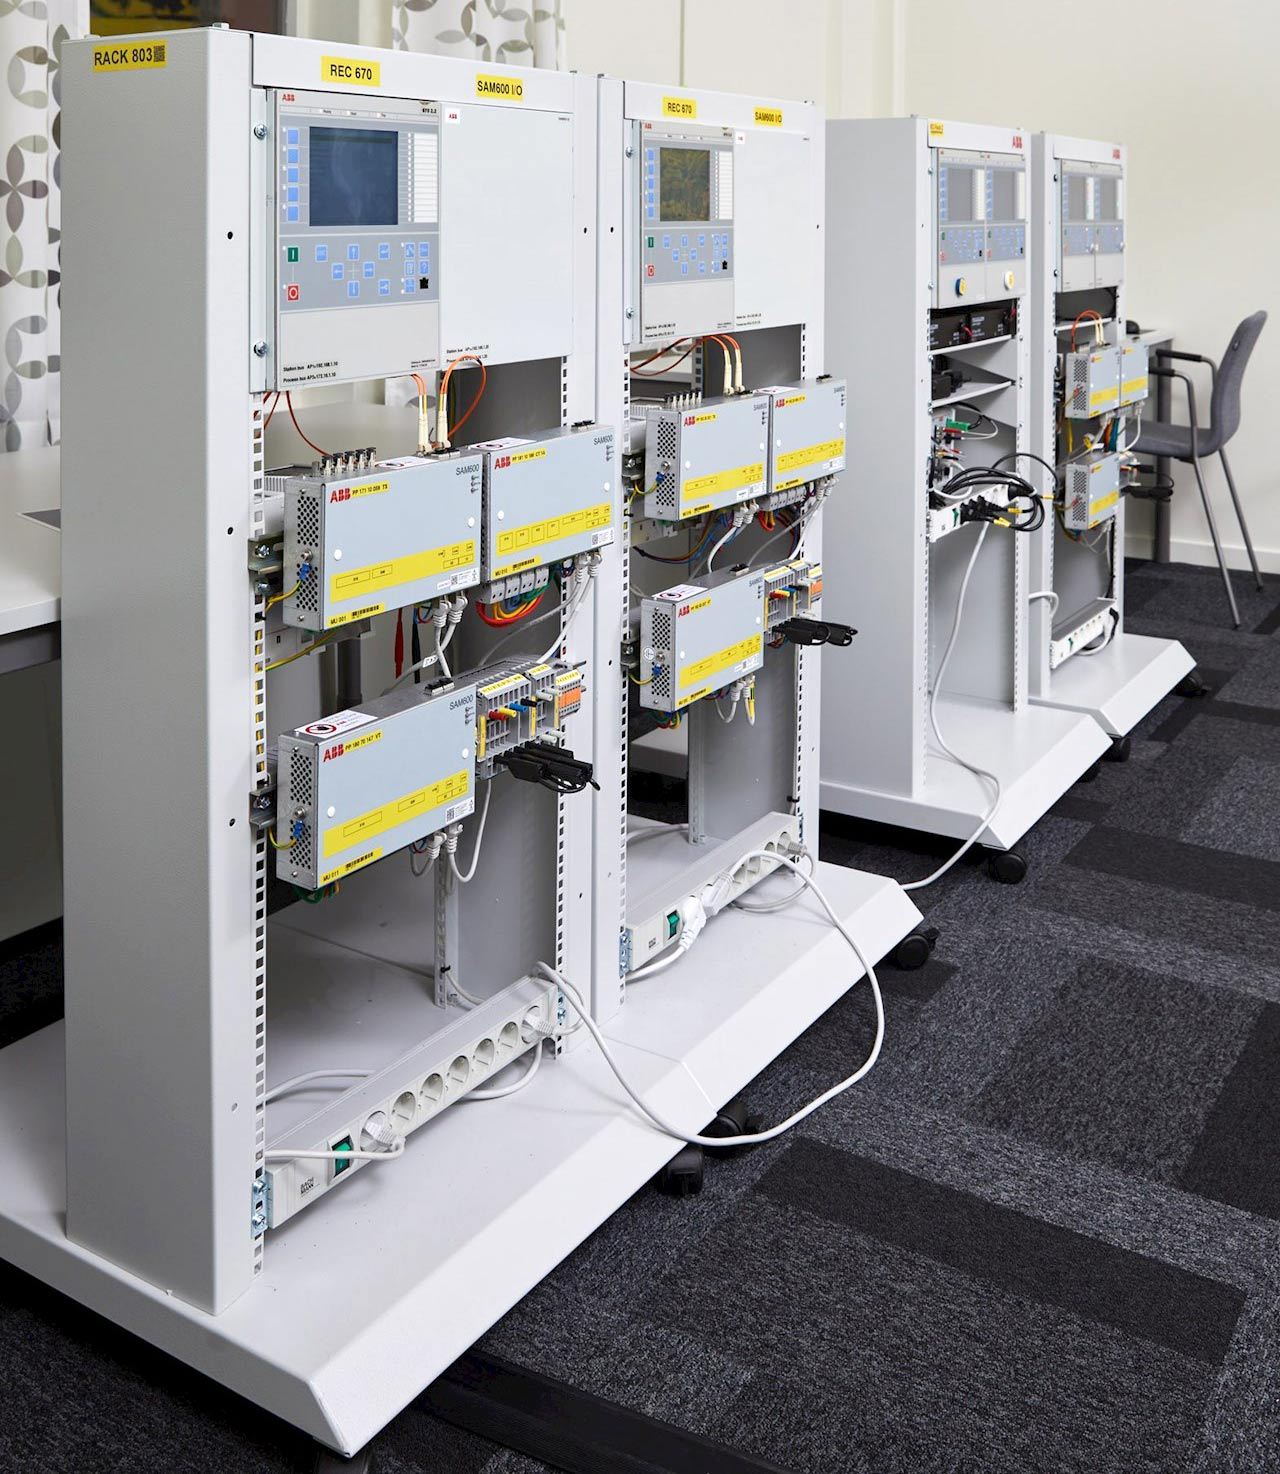 The Grid Automation Products demo system used in the training